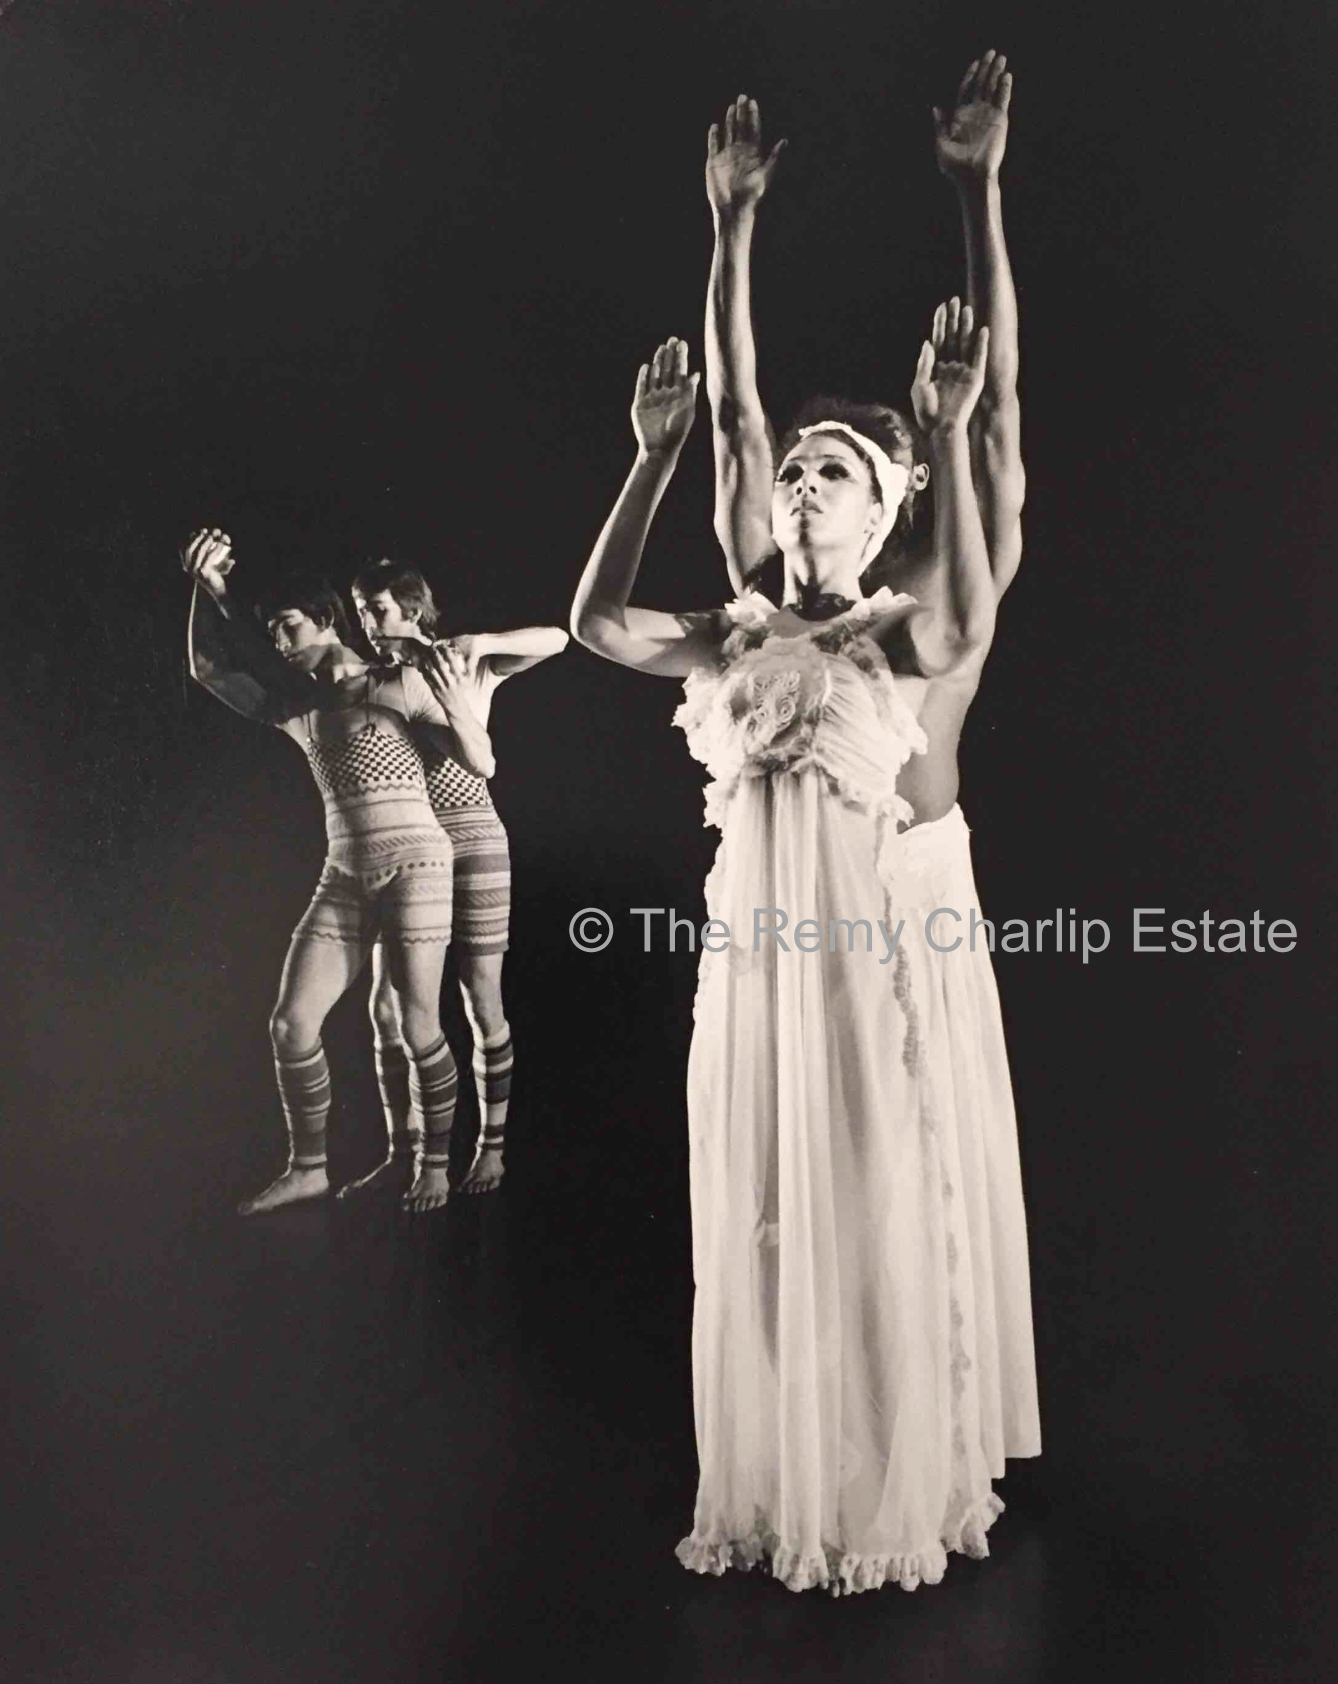 """Mad River"" 3 (1974) London Contemporary Dance Theater; Choreography, Remy Charlip; Performers: Cathy Lewis and Namron; Costume Design: Bill Gibb; Photo: Anthony Crickmay"